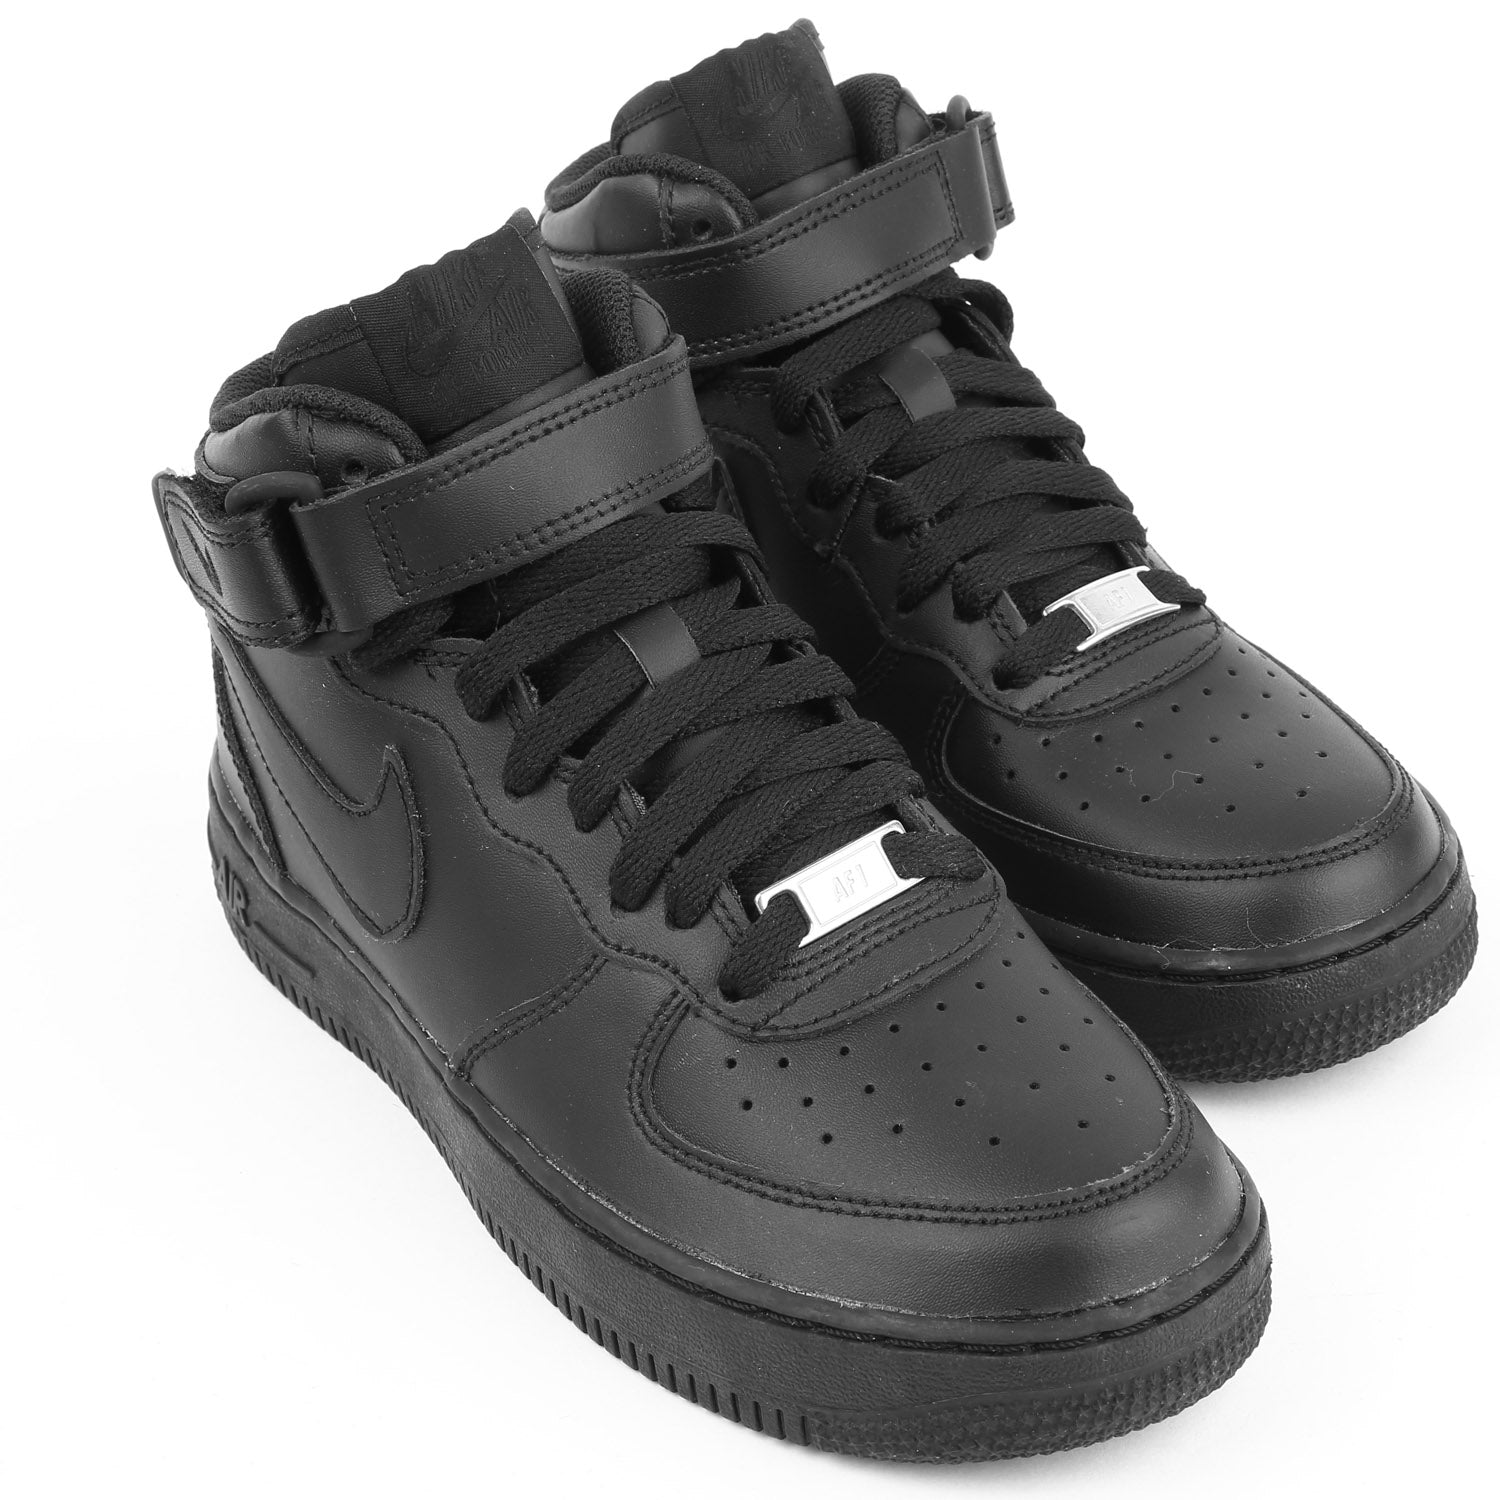 BOYS GRADE SCHOOL Youth Nike Air Force 1 Mid Sneakers 314195